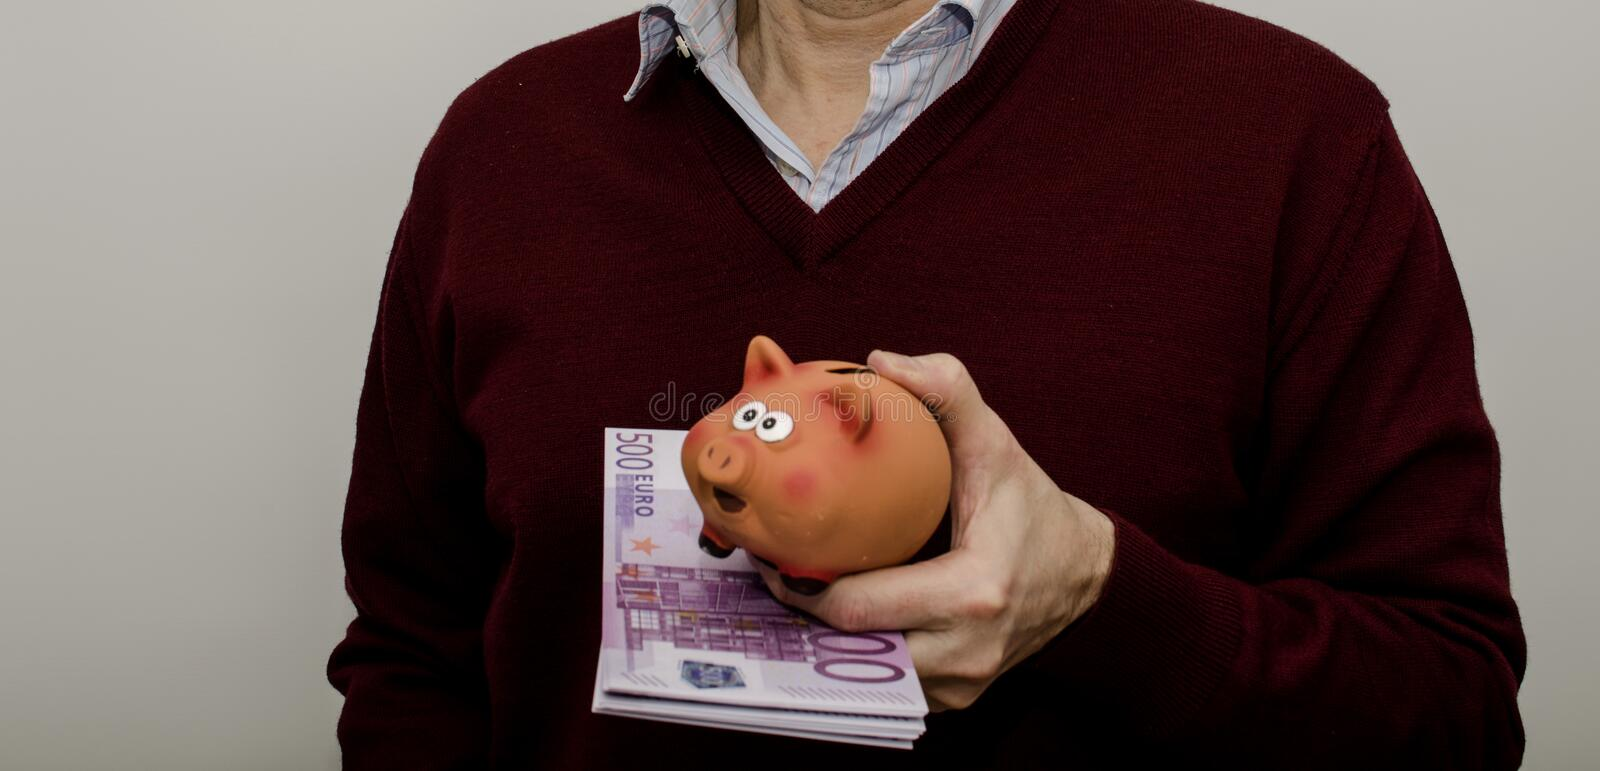 Man with 500 euro bills and piggy bank in hand royalty free stock photography